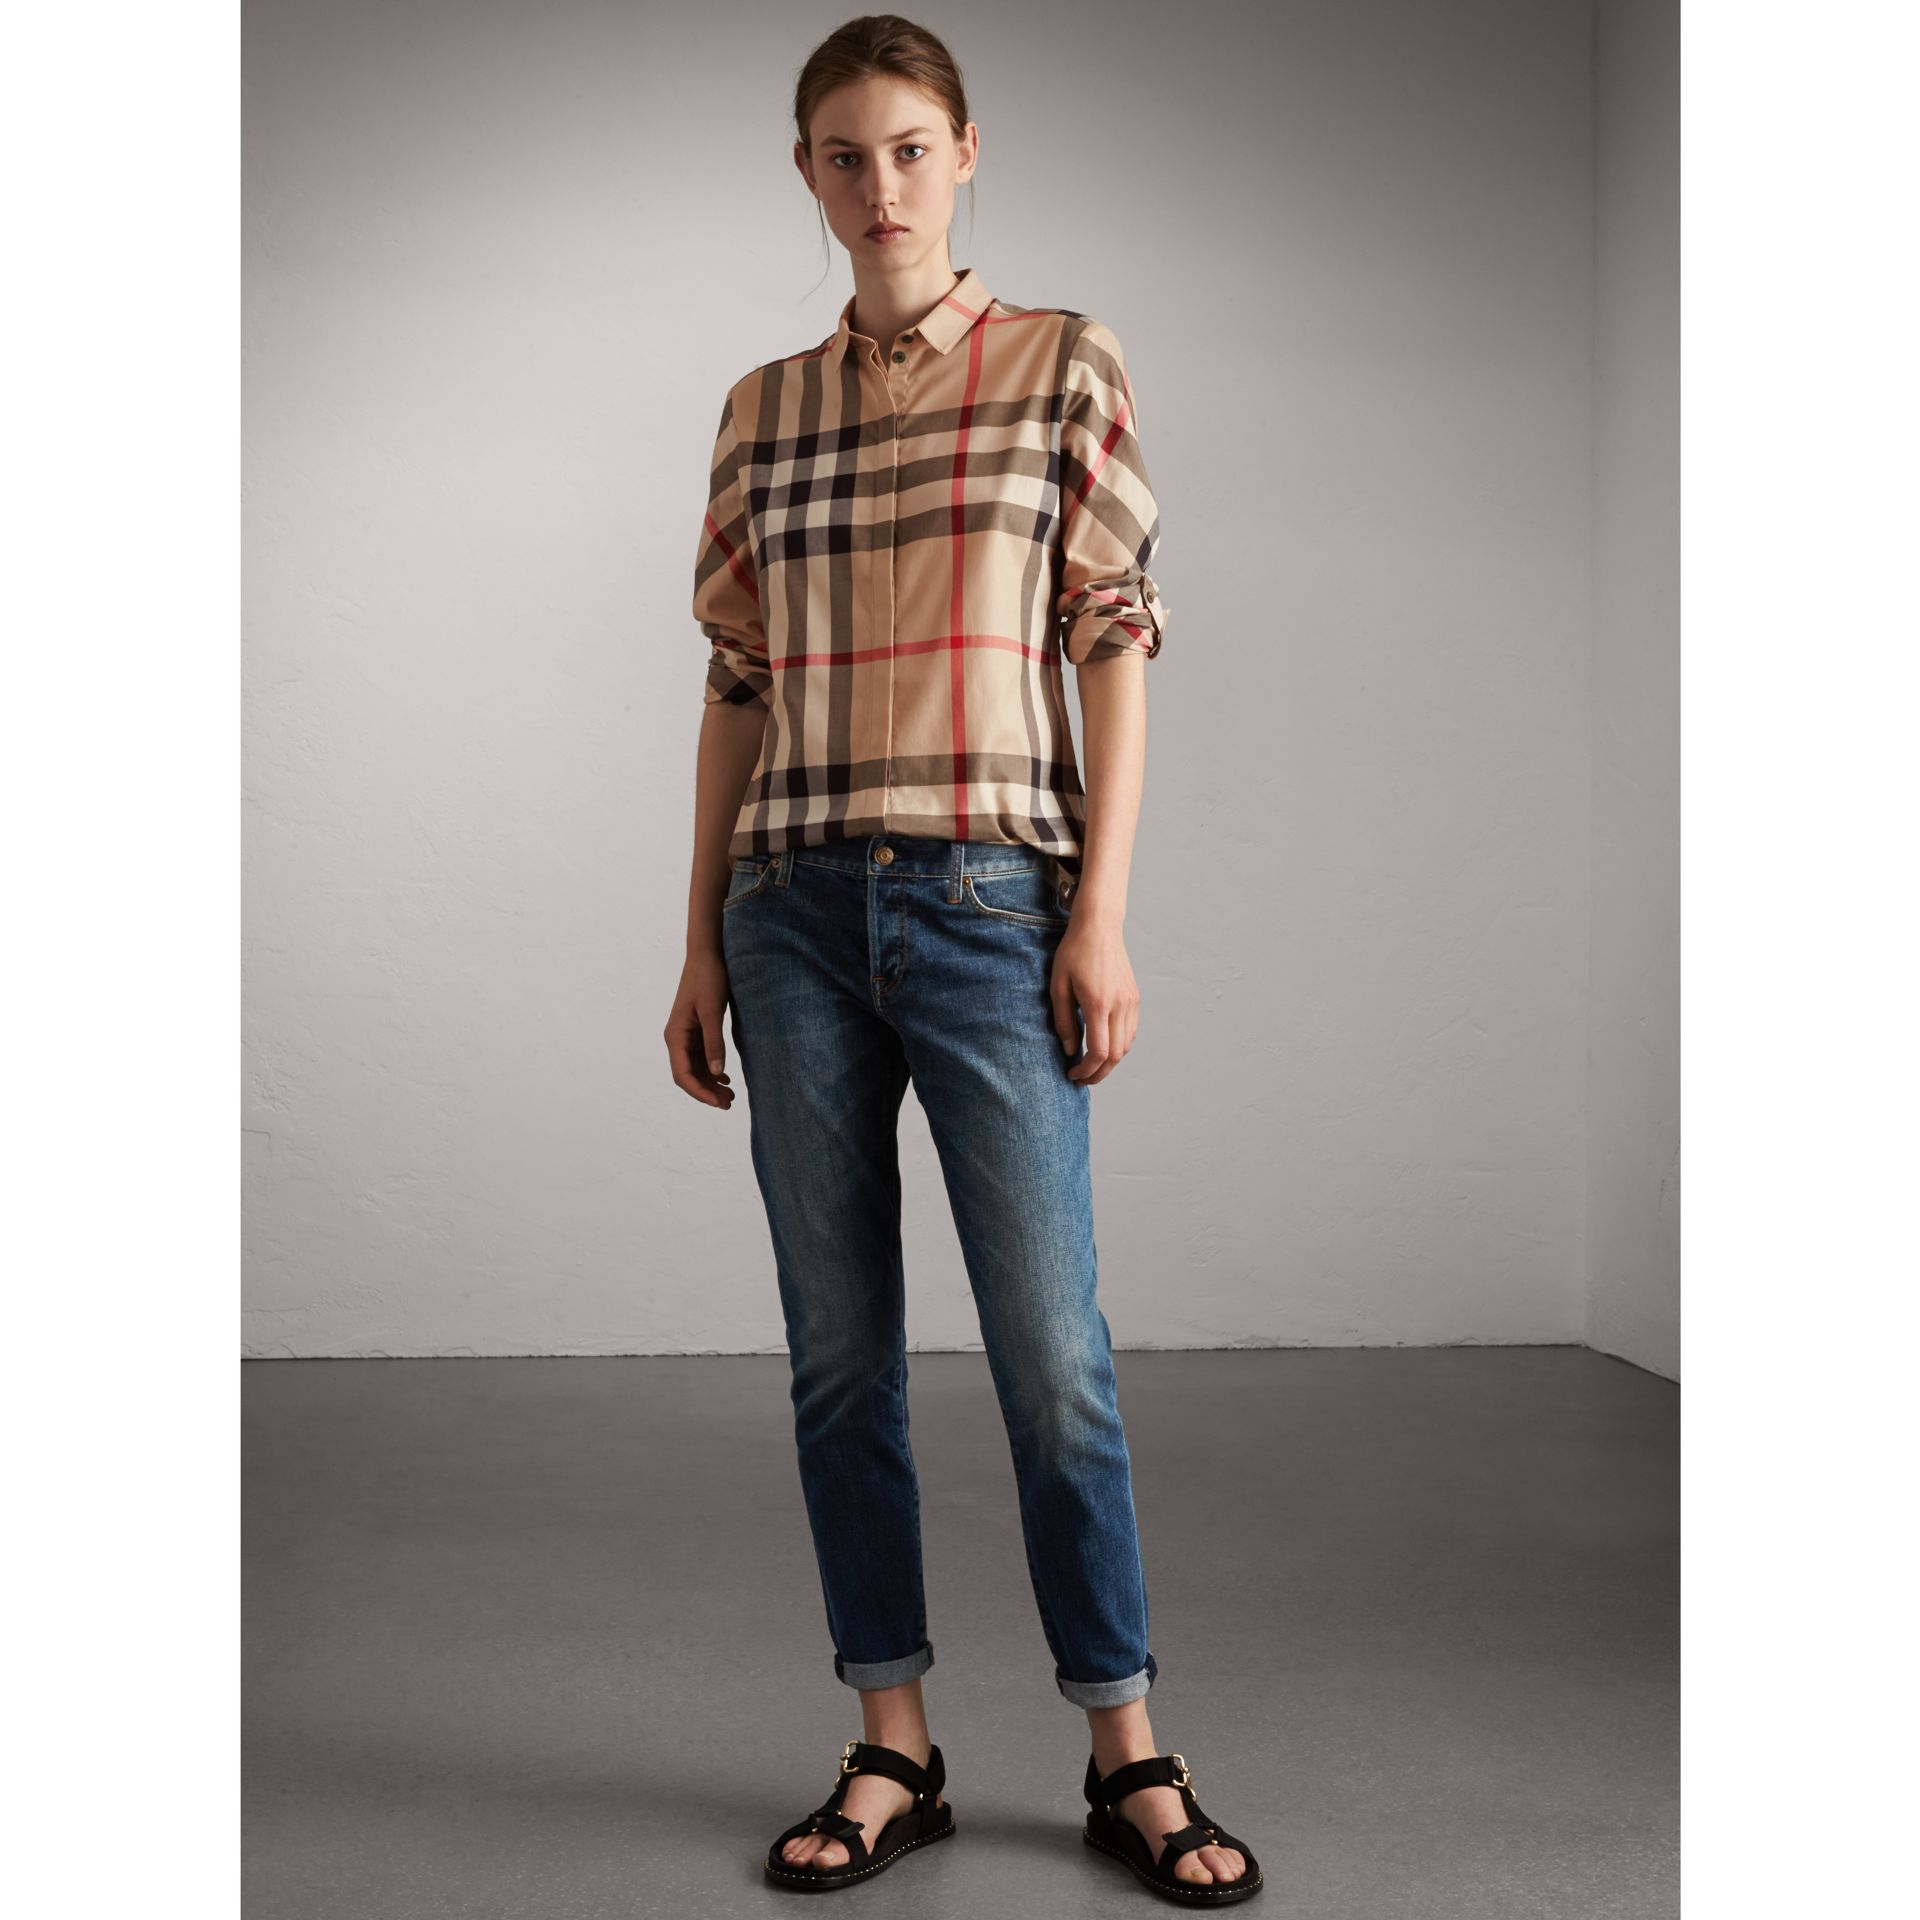 Bluse aus Stretchbaumwolle in Check (New Classic) - Damen | Burberry - Galerie-Bild 5